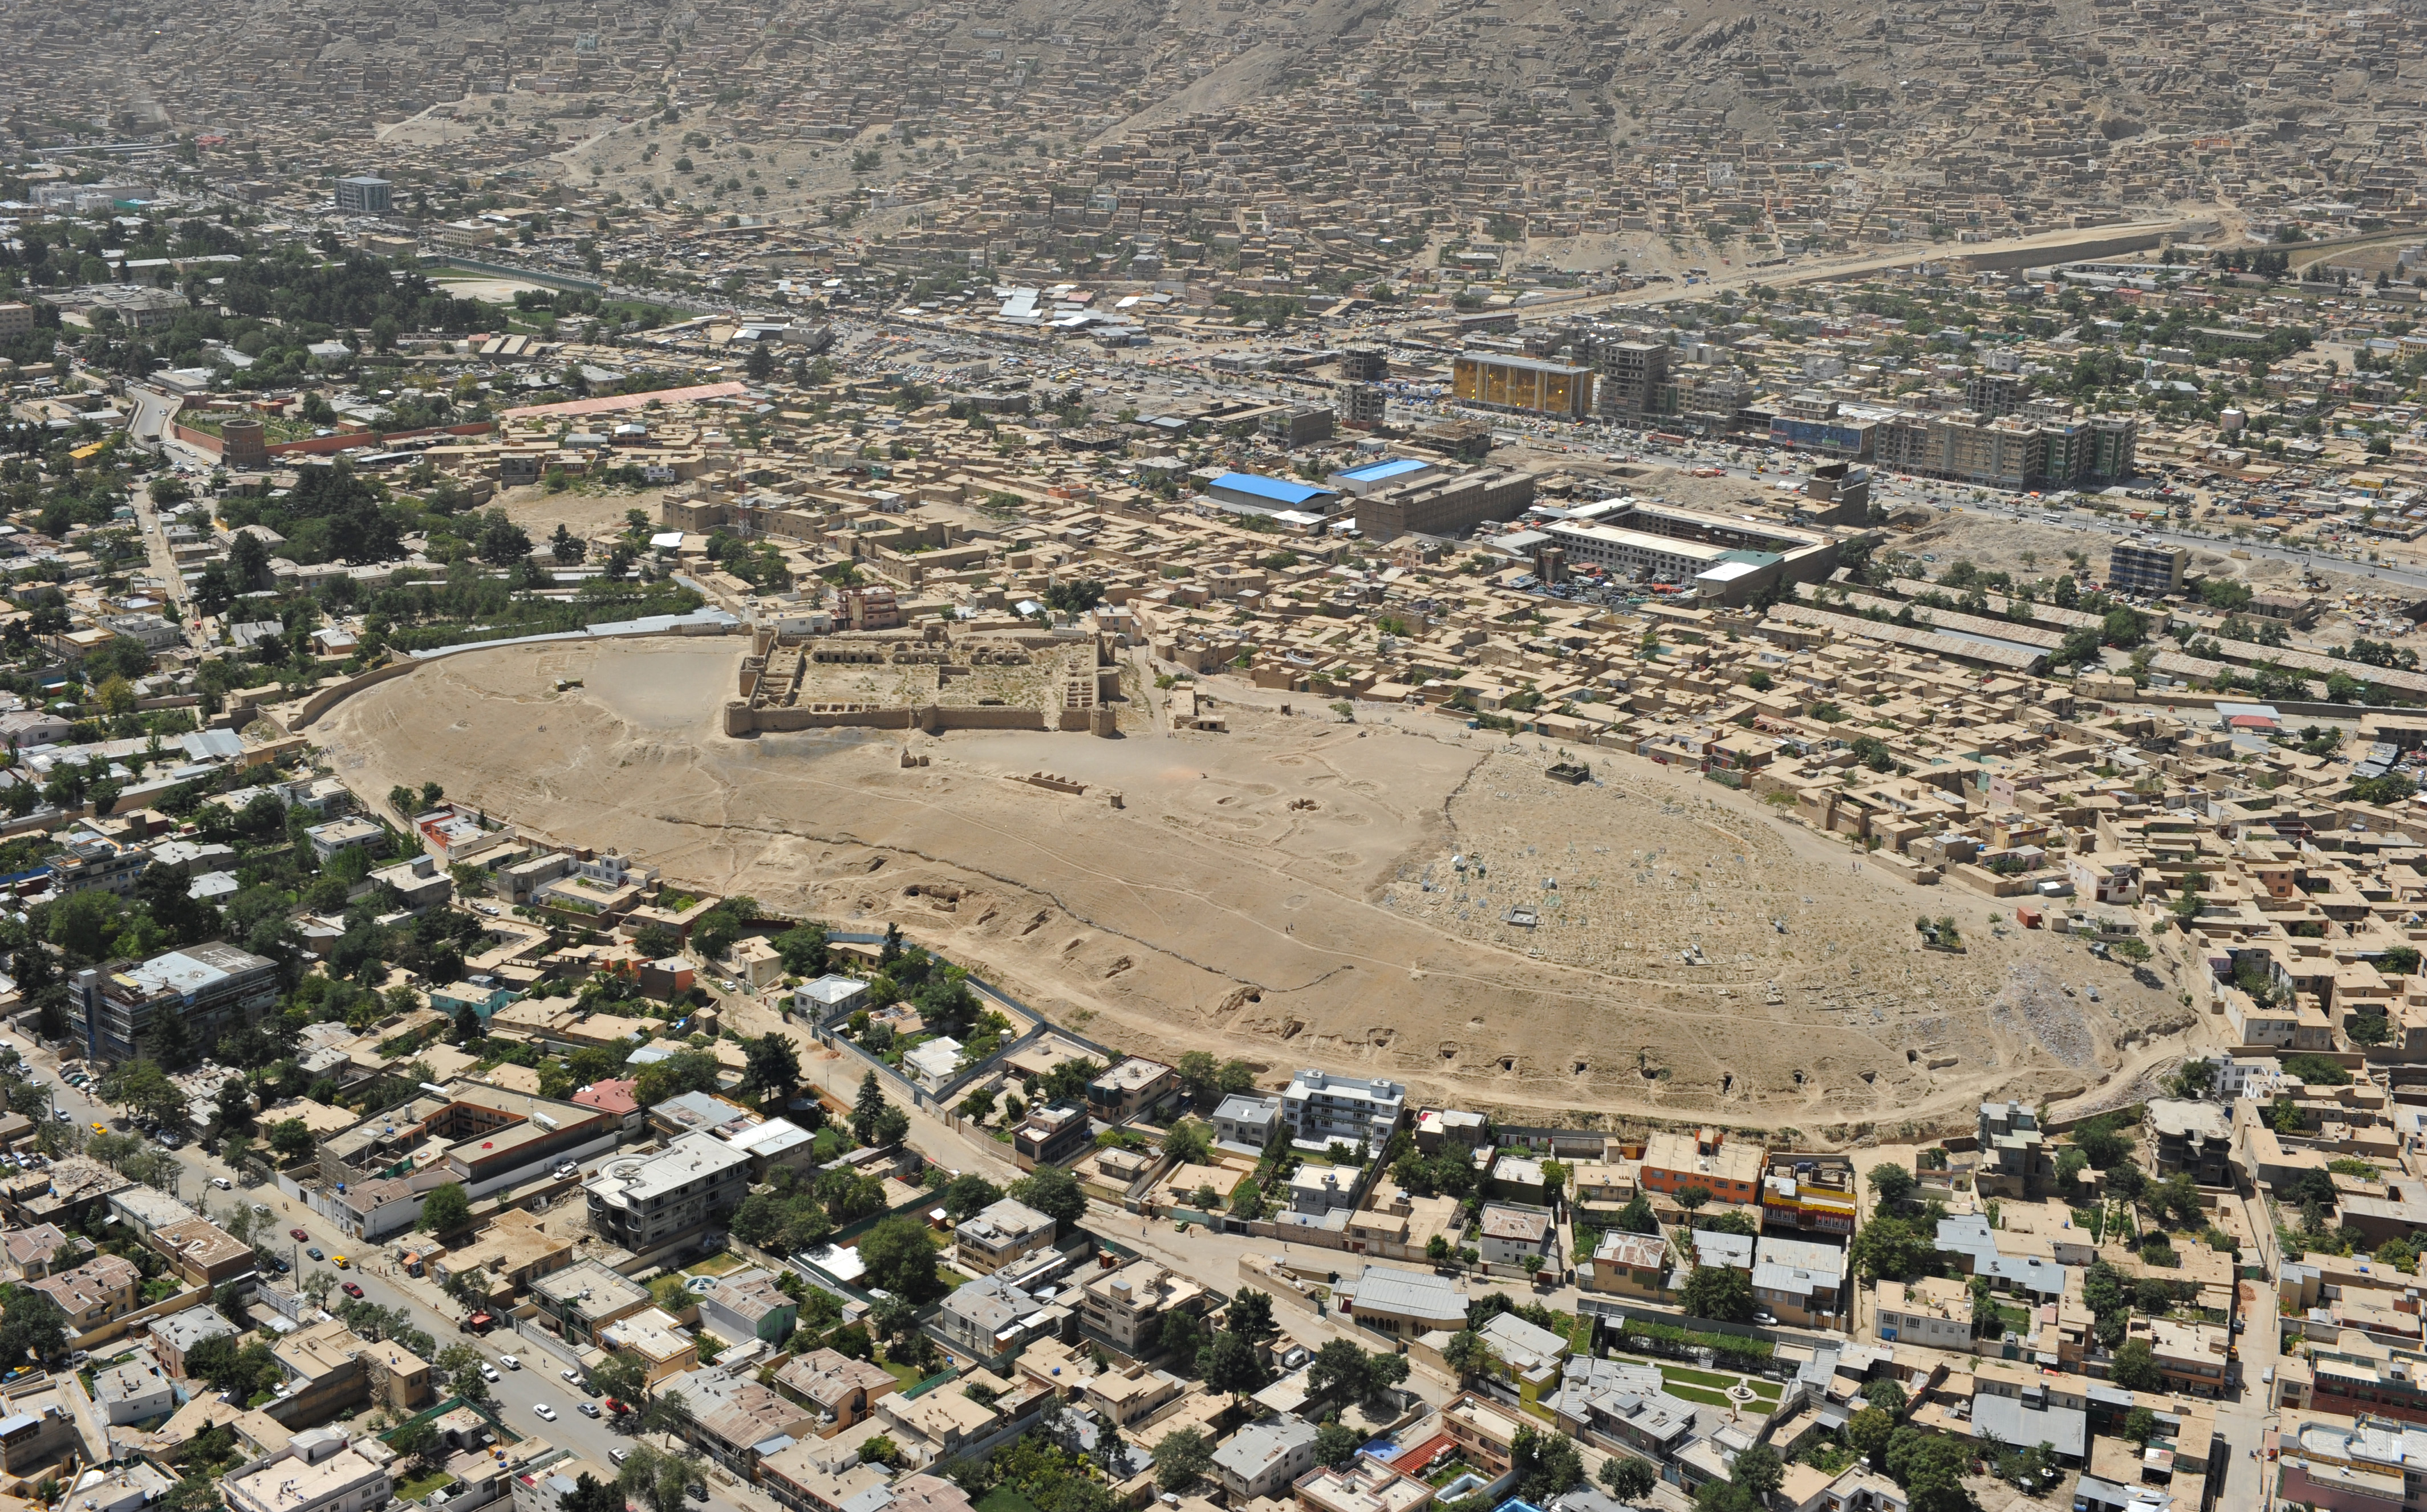 File:Section of Kabul in 2011.jpg - Wikimedia Commons